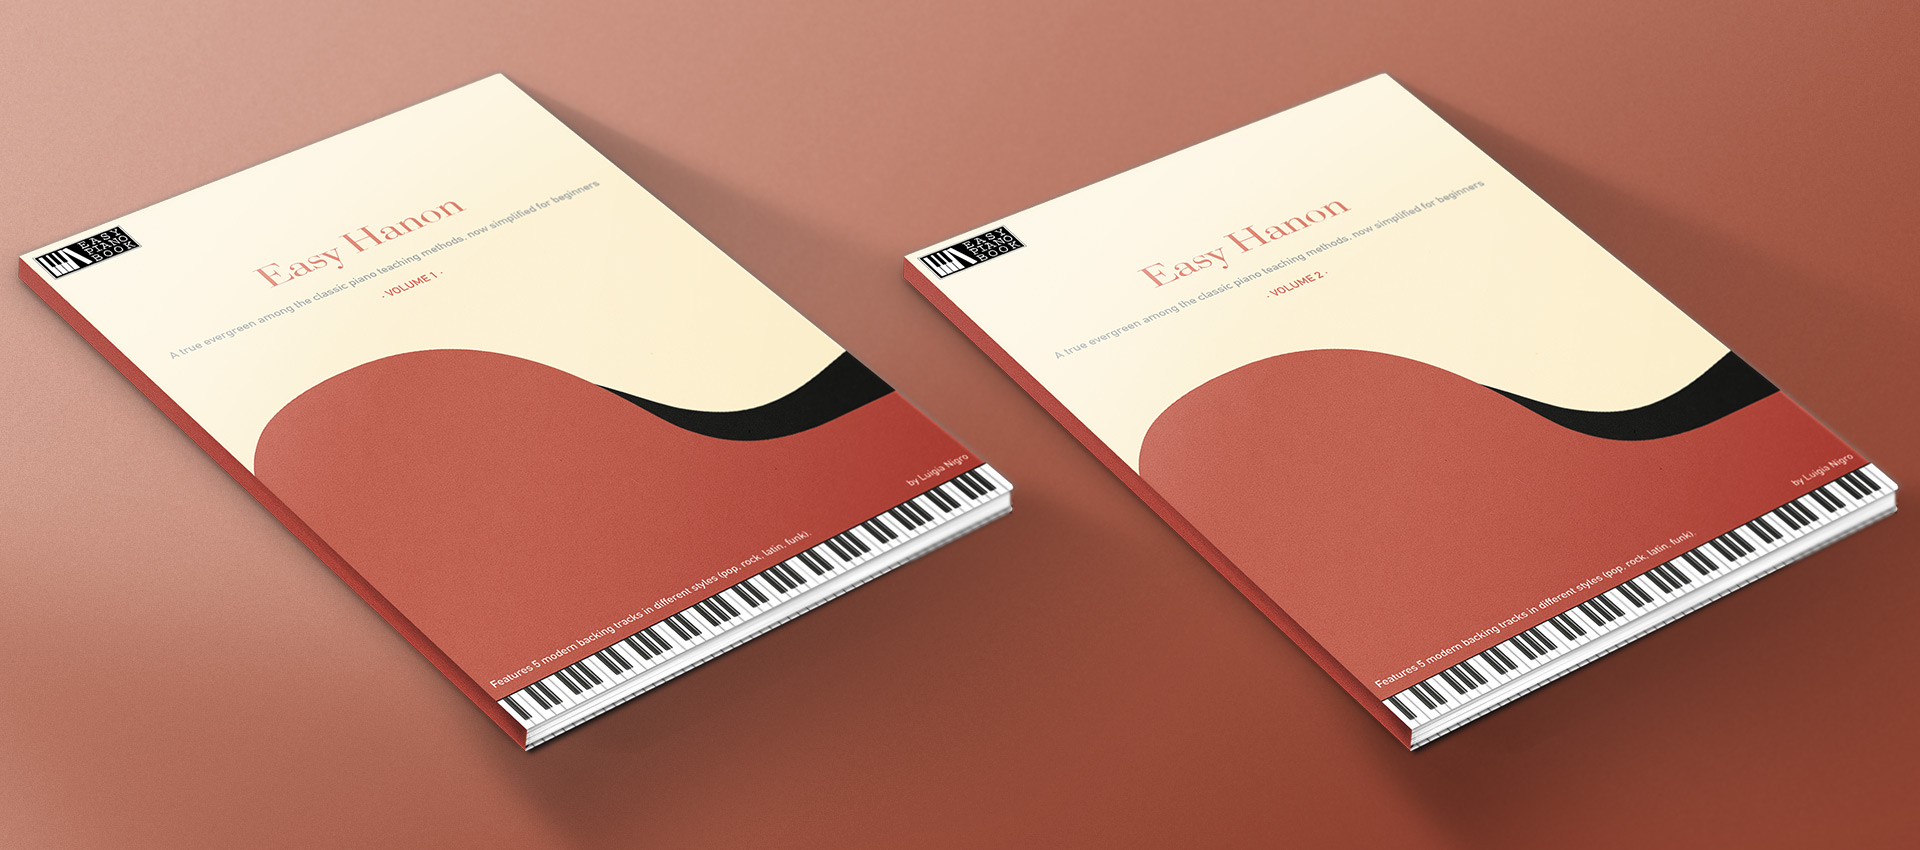 Easy Piano Book